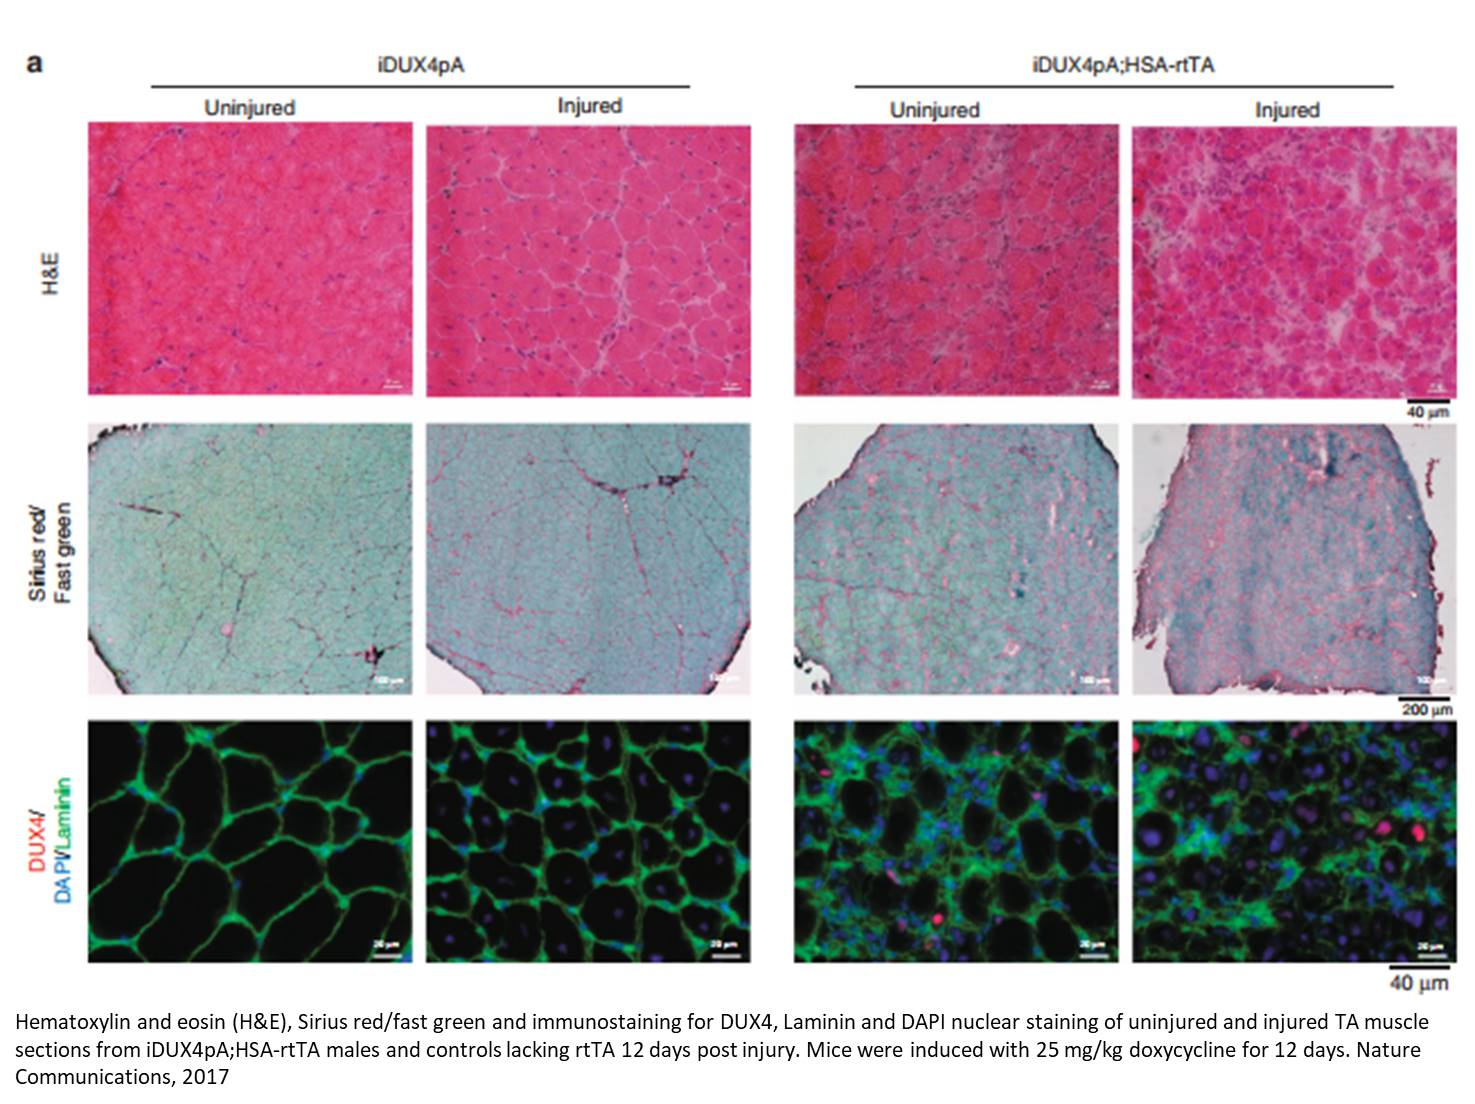 Facioscapulohumeral muscular dystrophy (FSHD) mouse model developed!